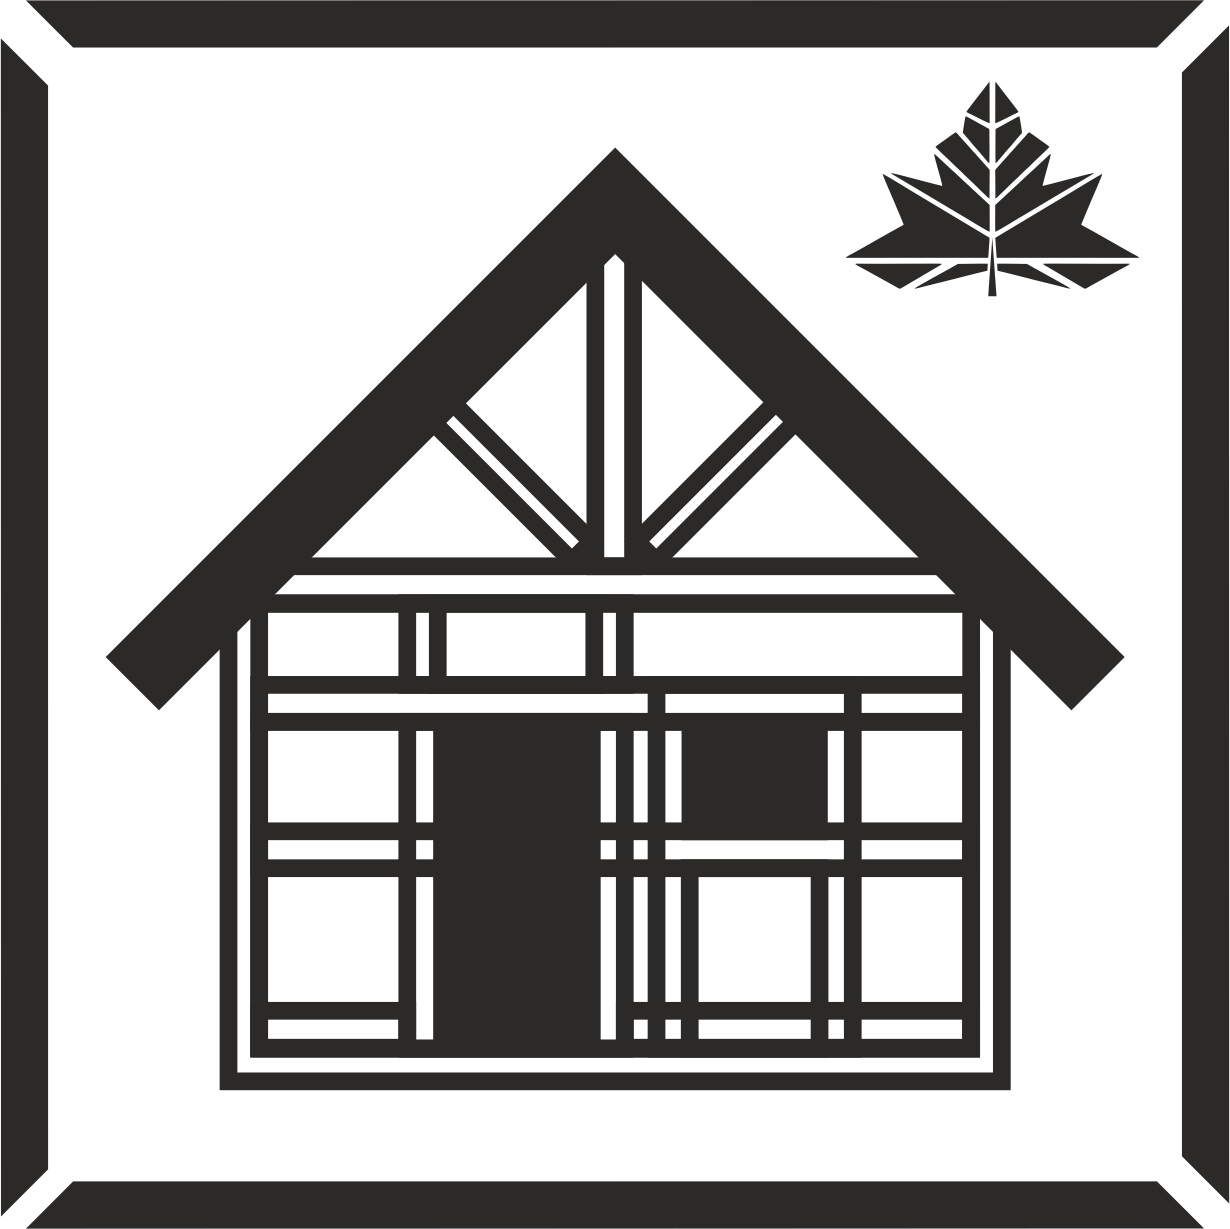 House under construction clipart vector royalty free download WOOD HOUSES - MATIOSKA - Wood Design & Construction vector royalty free download